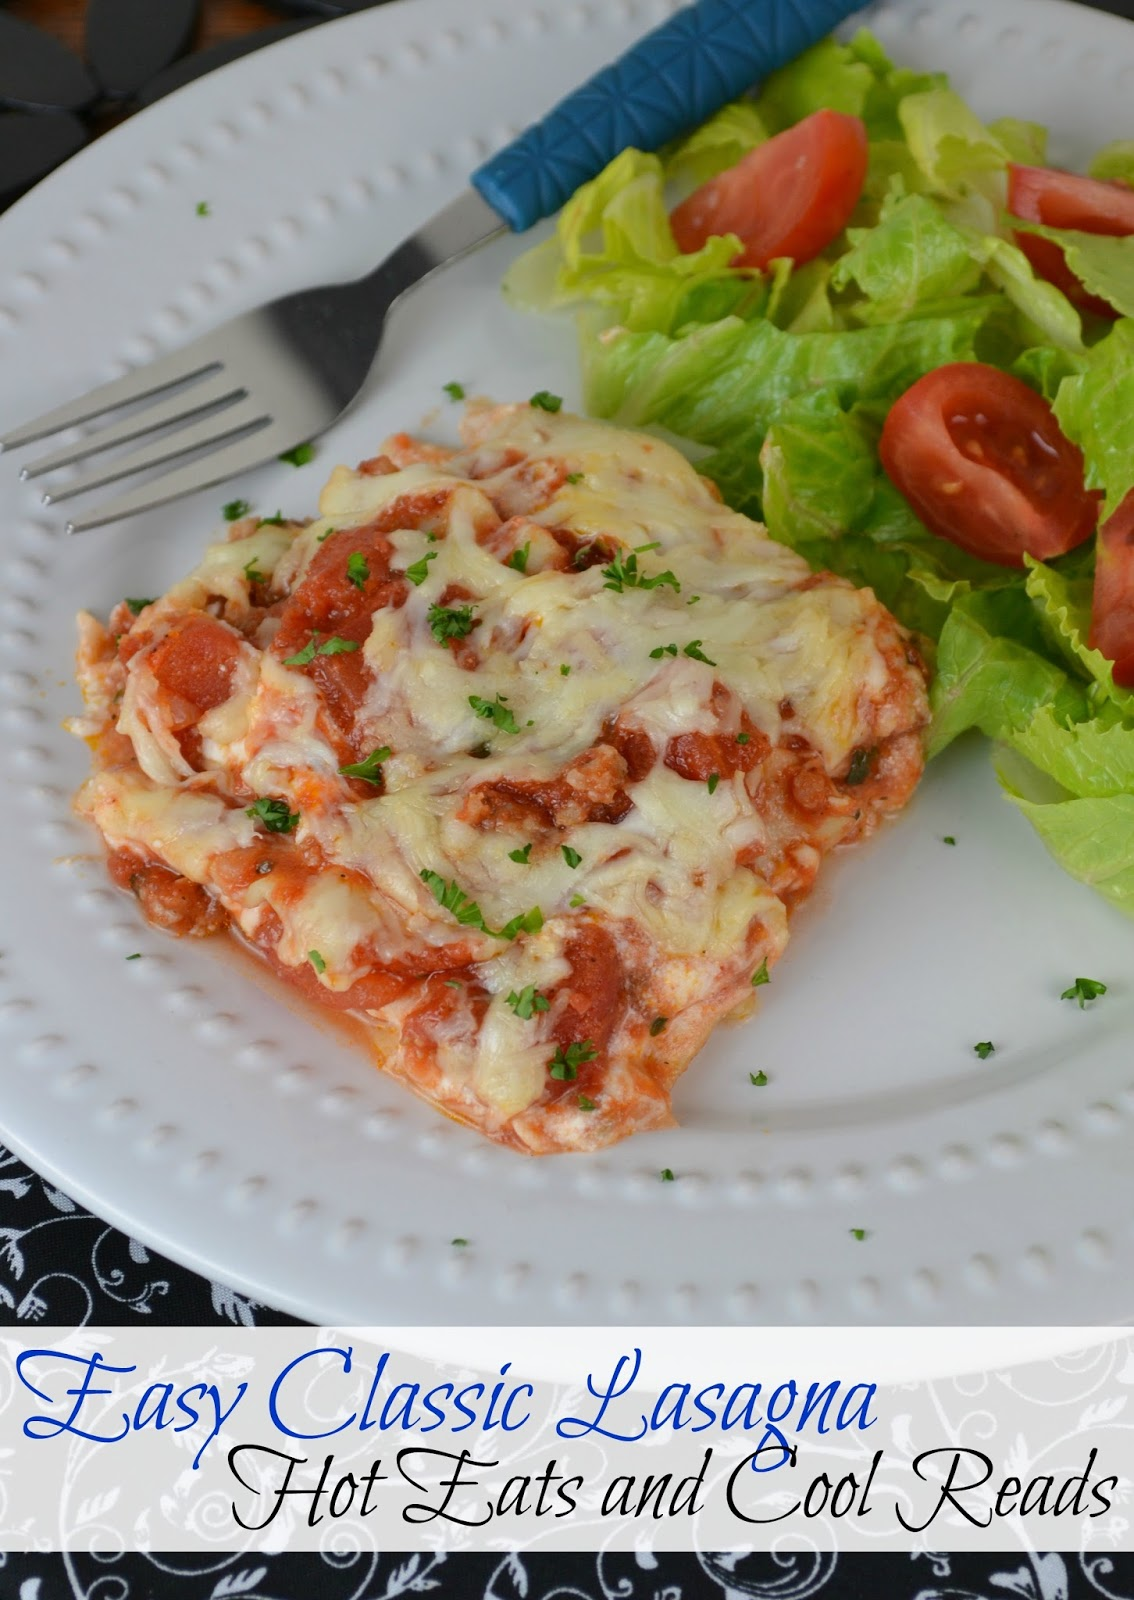 Classic comfort food with an easy to make homemade sauce! This recipe is sure to please the whole family! Easy Classic Lasagna from Hot Eats and Cool Reads